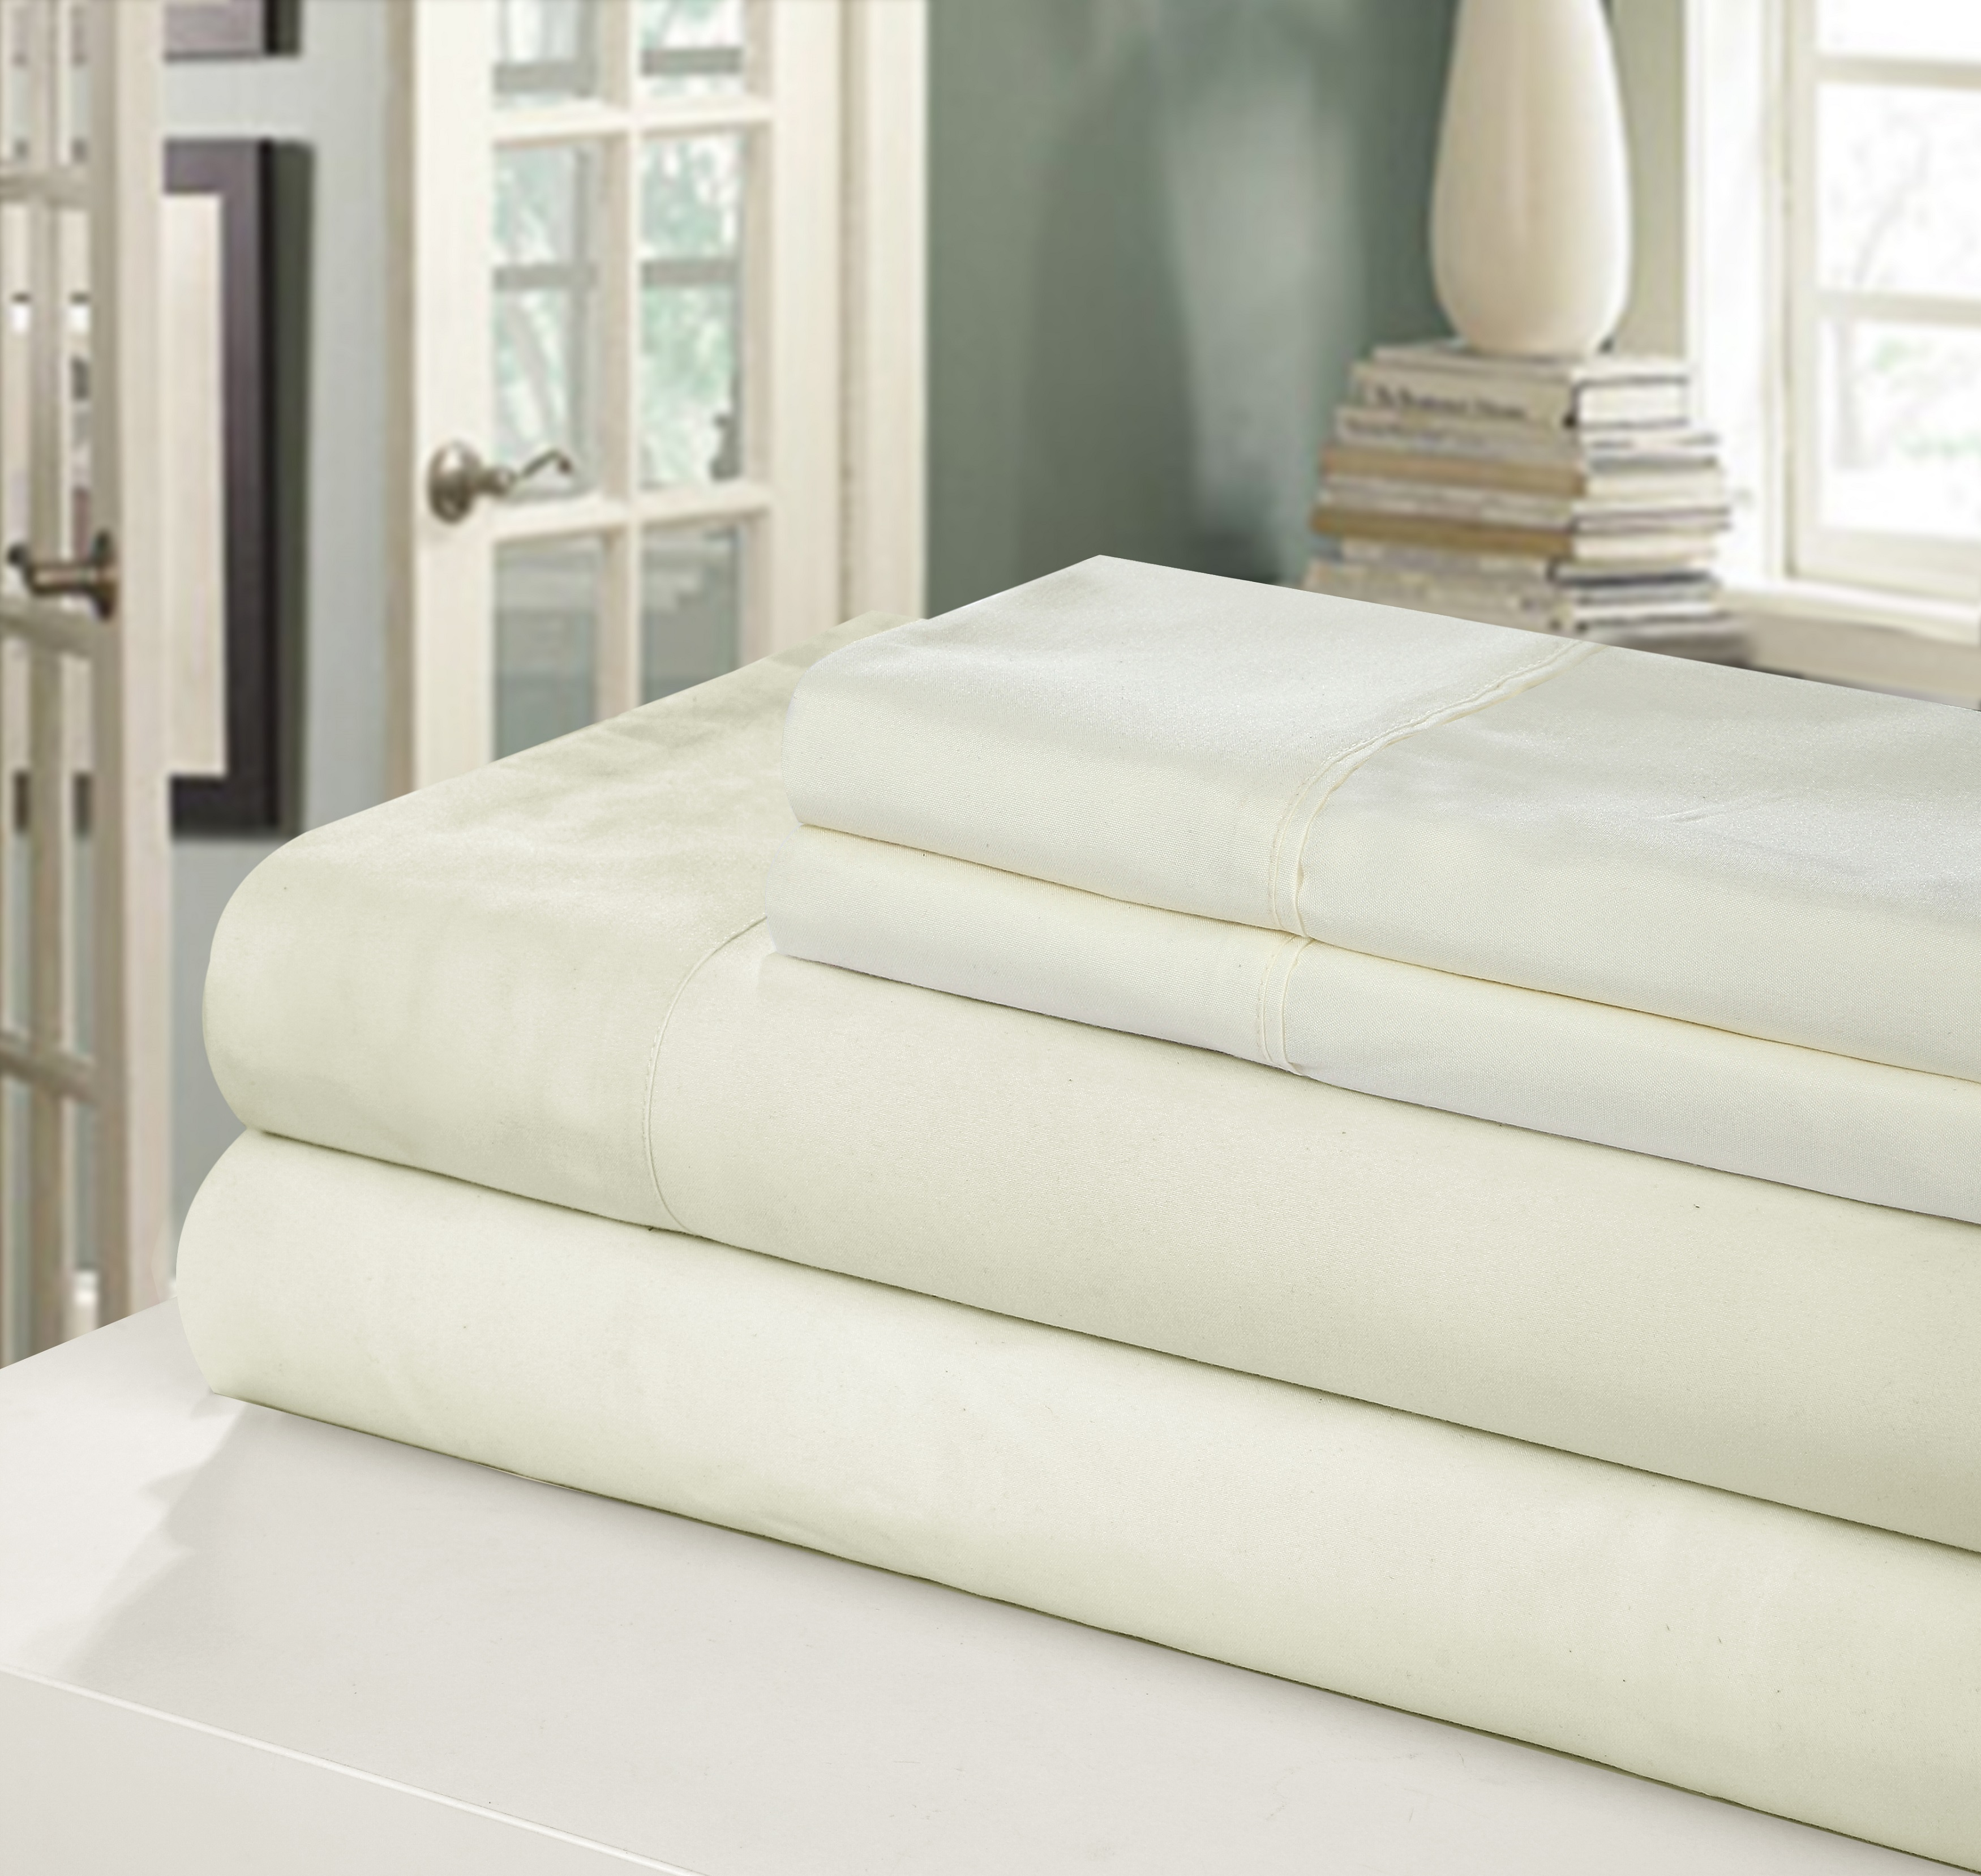 Chic Home NEW!! Chic Home 400 Series Peach Skin Microfiber 3-Piece Sheet Set Ensemble, Twin, White